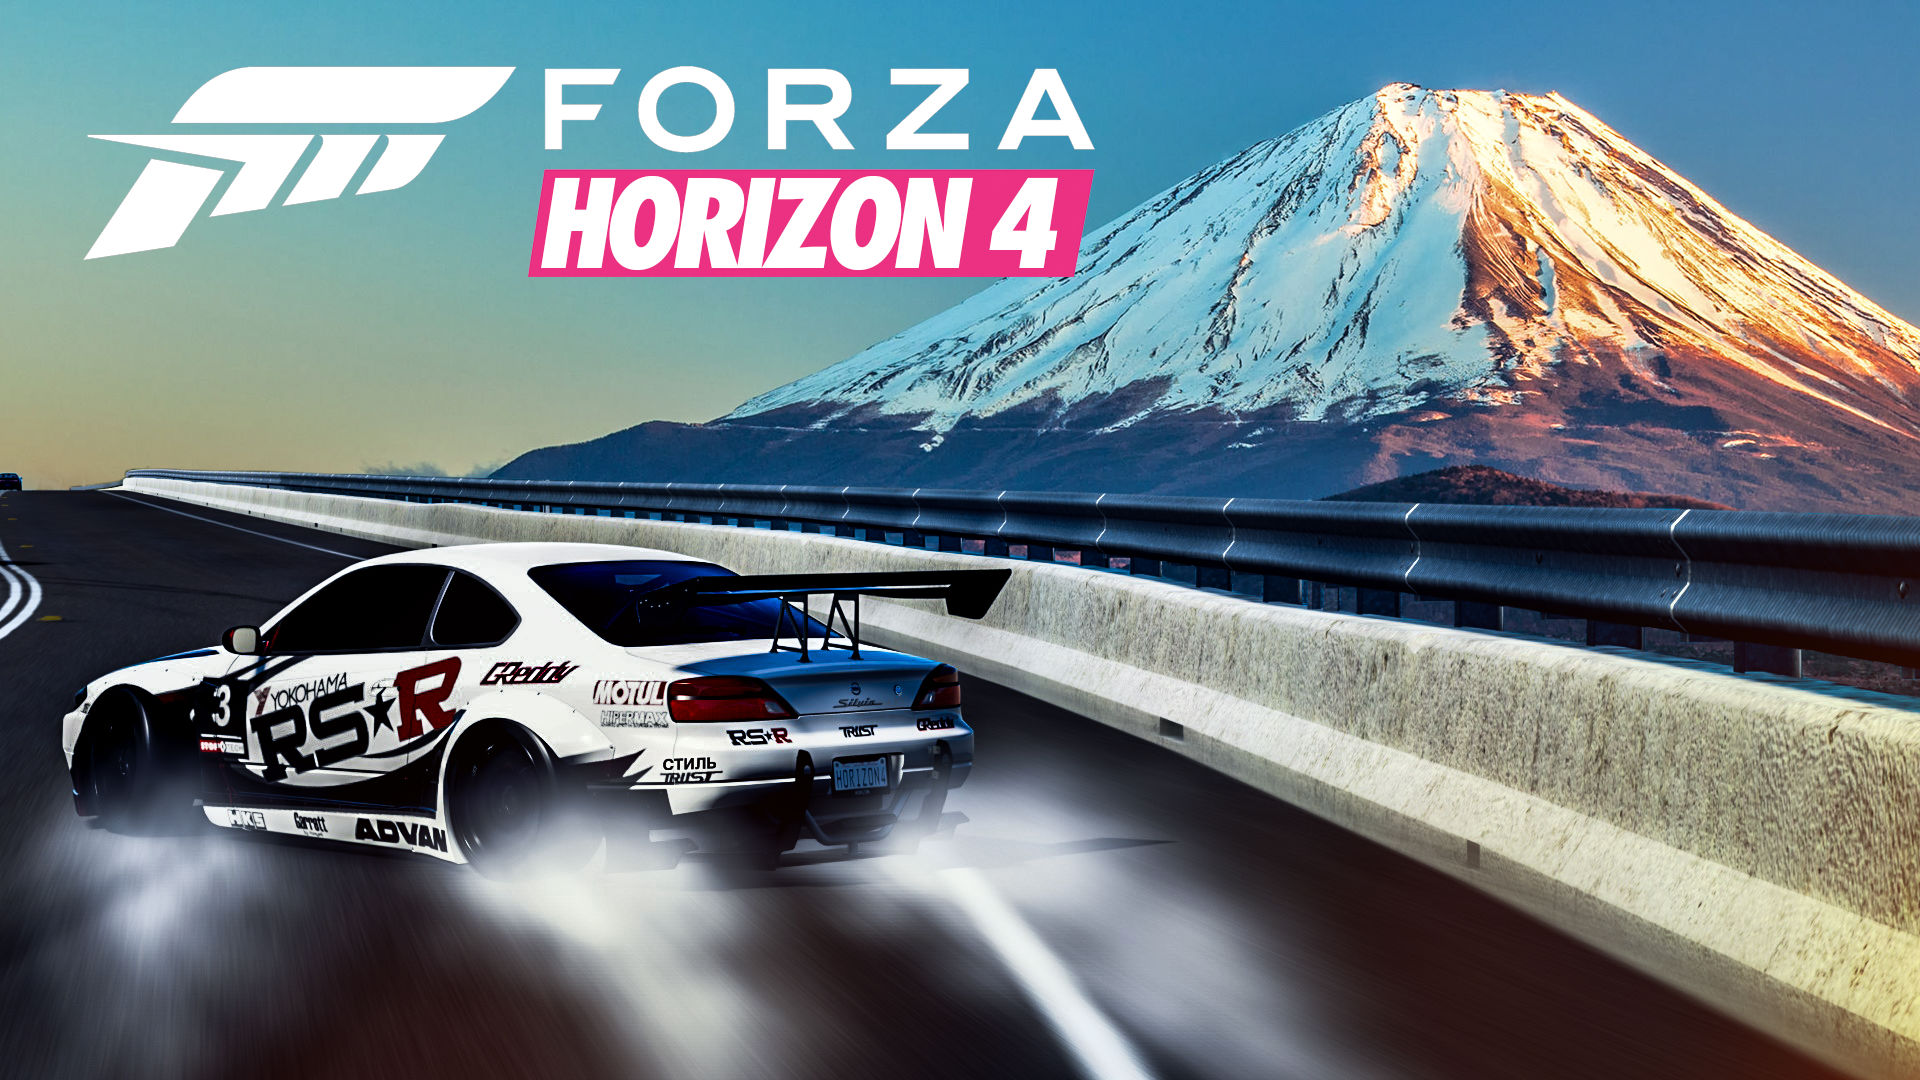 forza horizon 4 muestra todo su poder en un nuevo v deo en 4k. Black Bedroom Furniture Sets. Home Design Ideas